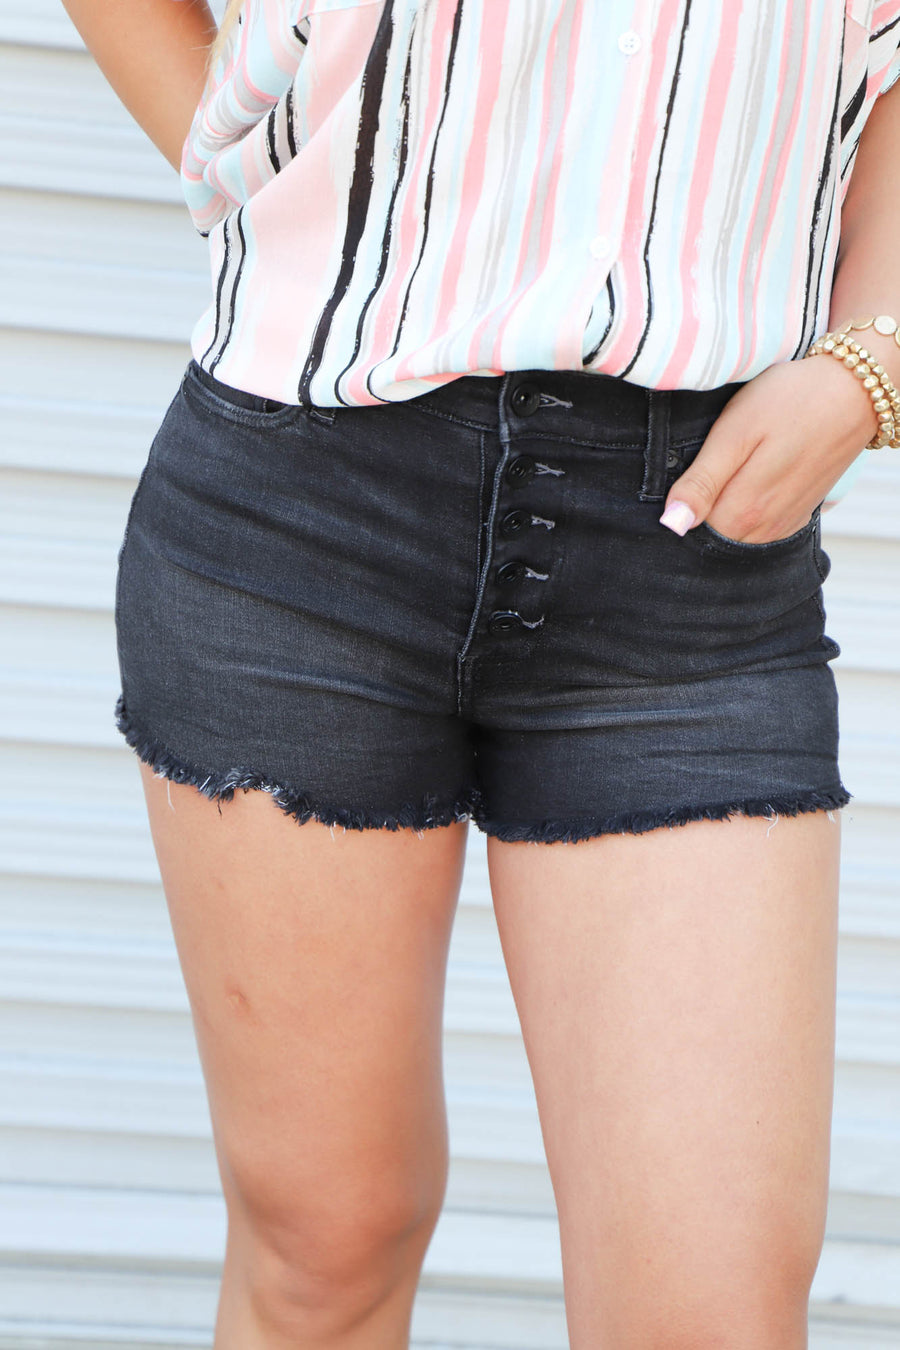 KK Drifter Black Shorts - ShopSpoiled